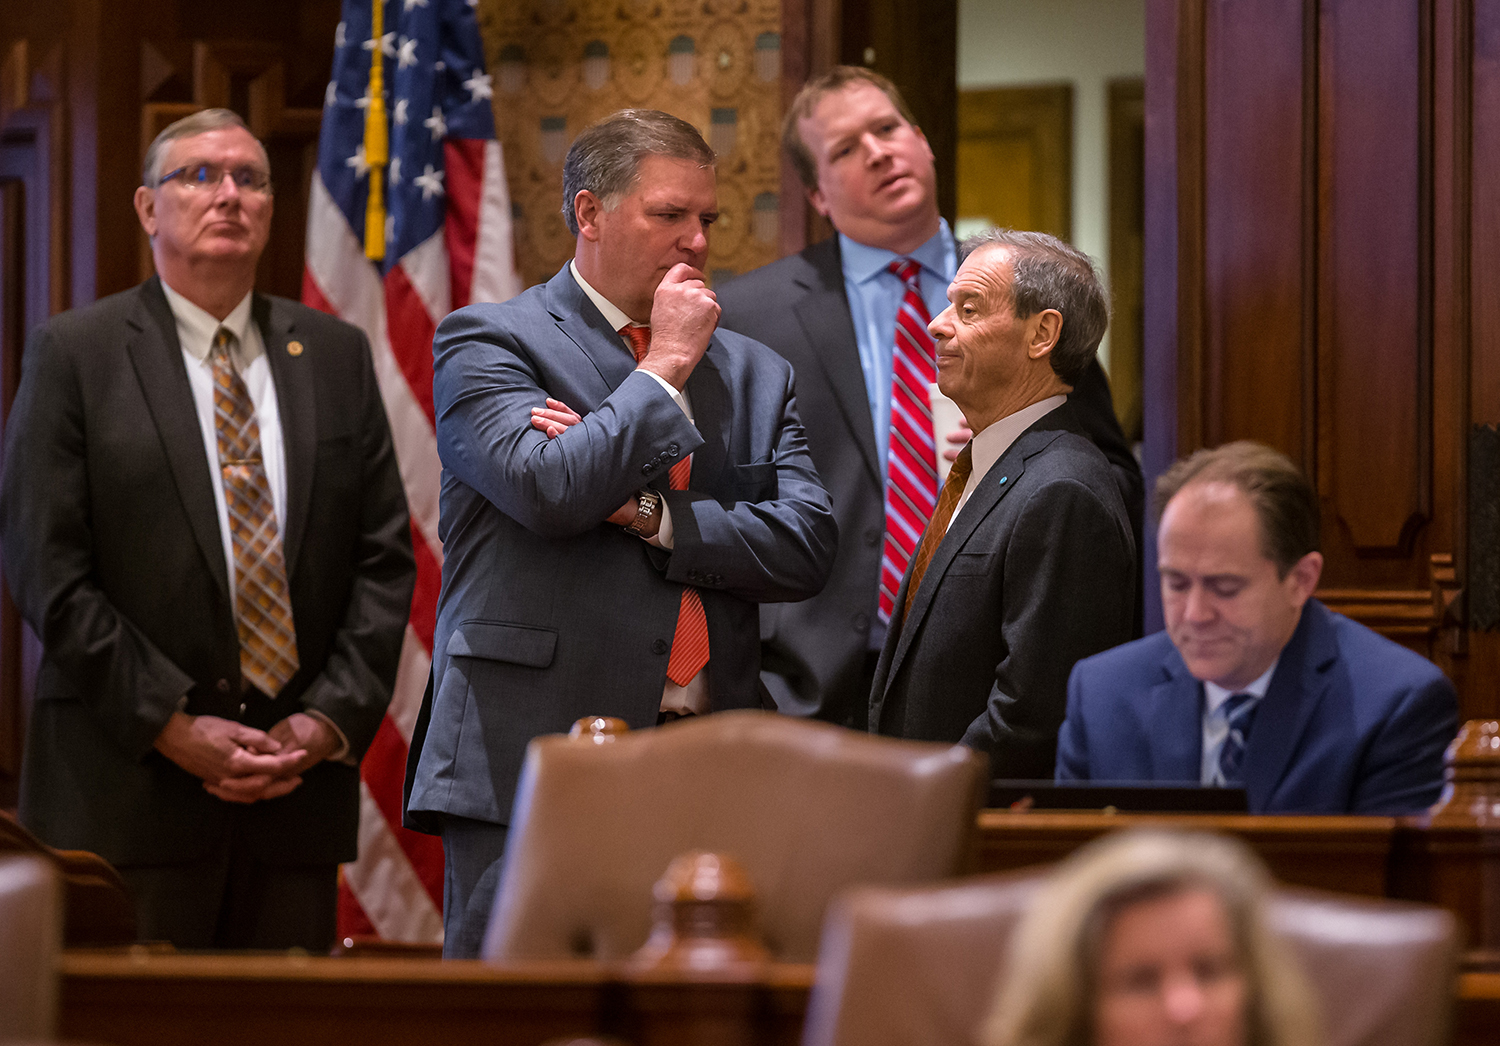 Illinois Senate Republican Leader Bill Brady, R-Bloomington, talks with Illinois Senate President John Cullerton, D-Chicago, right, during debate on on Senate Bill 1, a bill to raise the state's minimum wage to $15 an hour by 2025, on the Senate floor at the Illinois State Capitol, Thursday, Feb. 7, 2019, in Springfield, Ill. [Justin L. Fowler/The State Journal-Register]